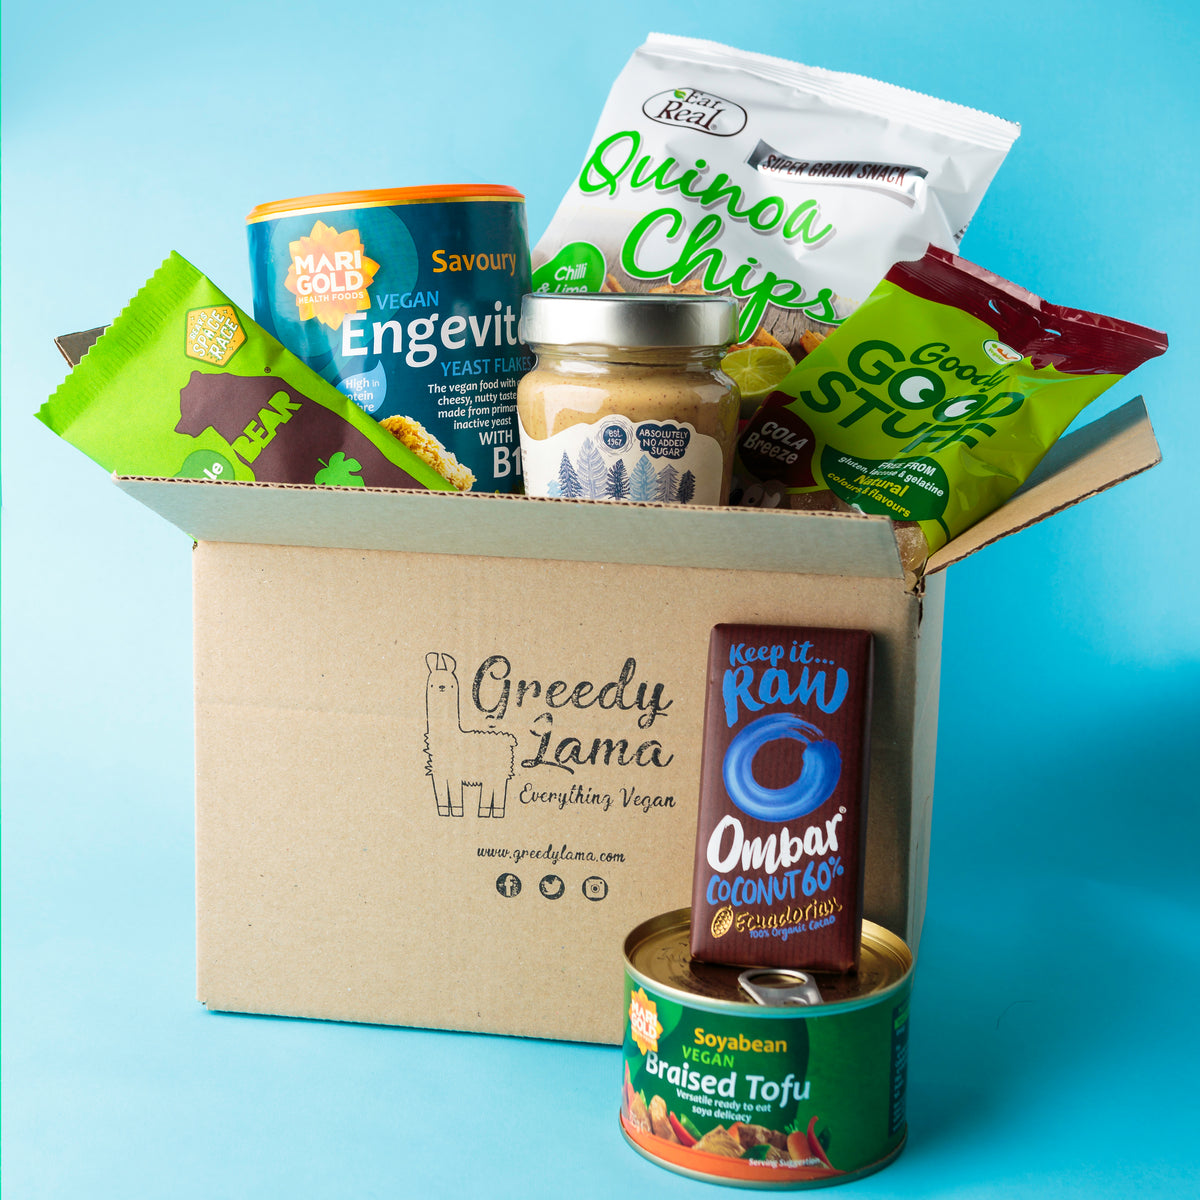 Greedy Lama Vegan Subscription Box Examples